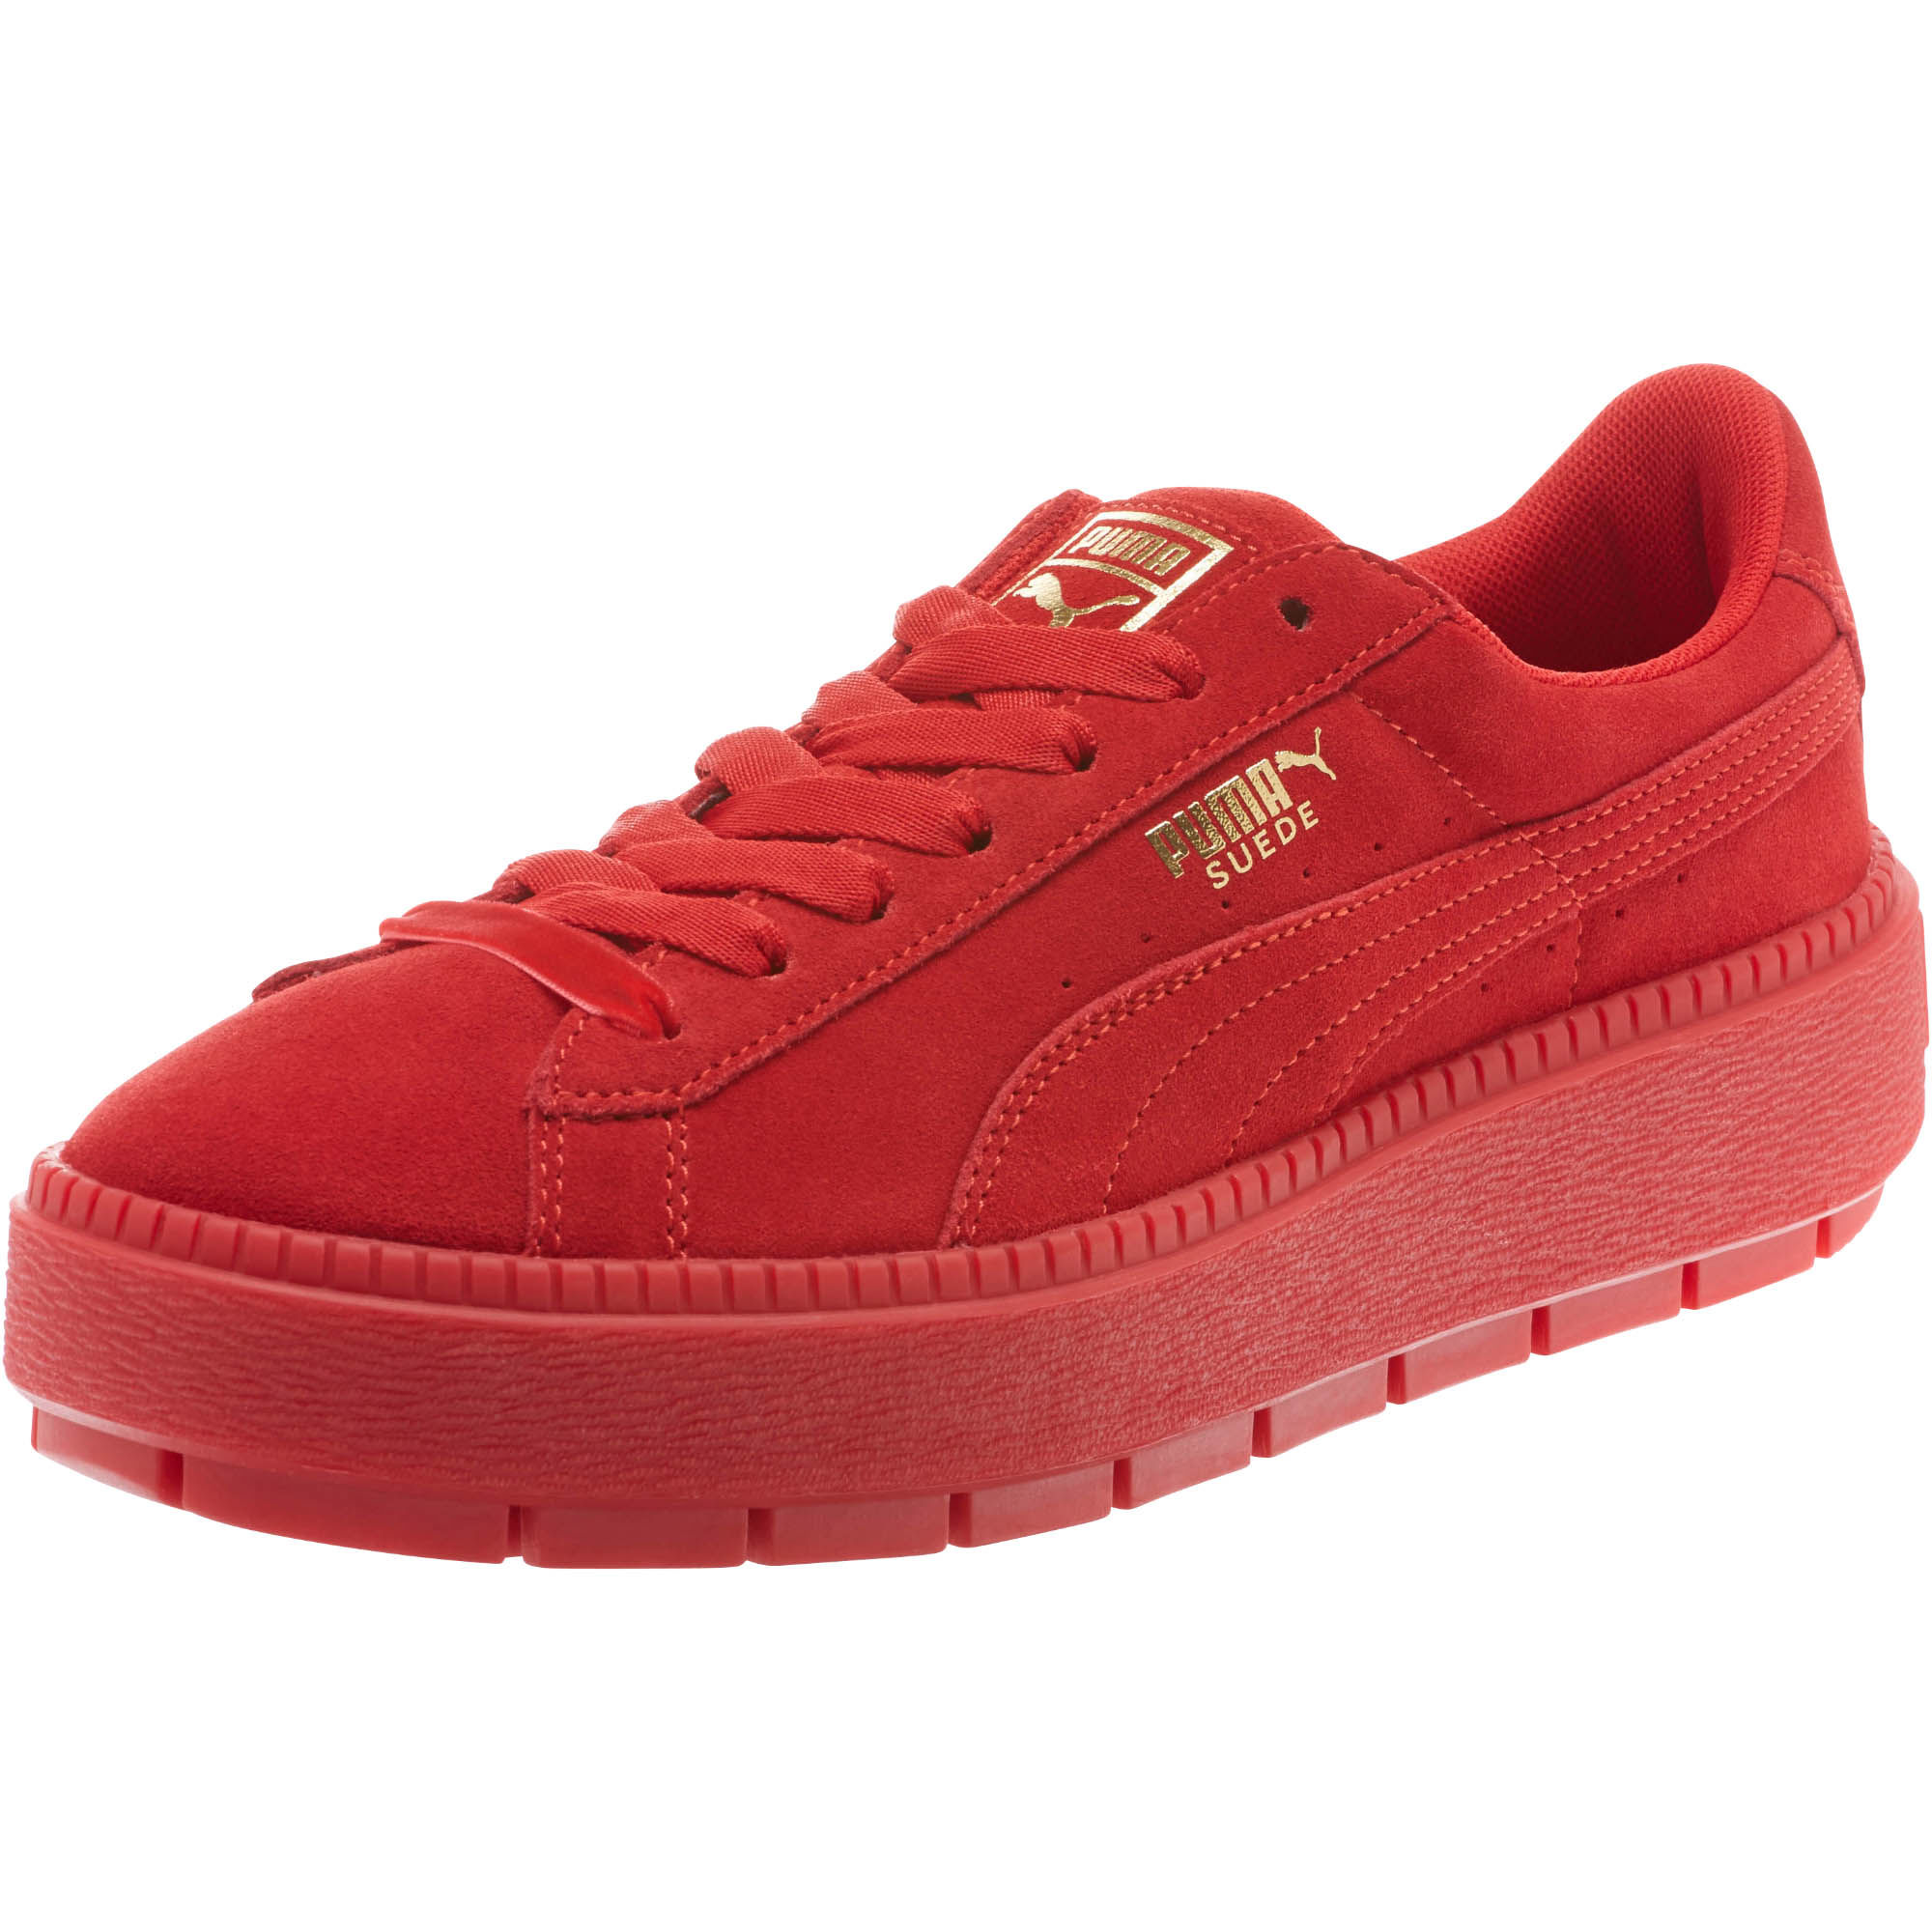 USA shoes red white blue sneakers olympics puma suede platform trace valentine's day women's sneakers